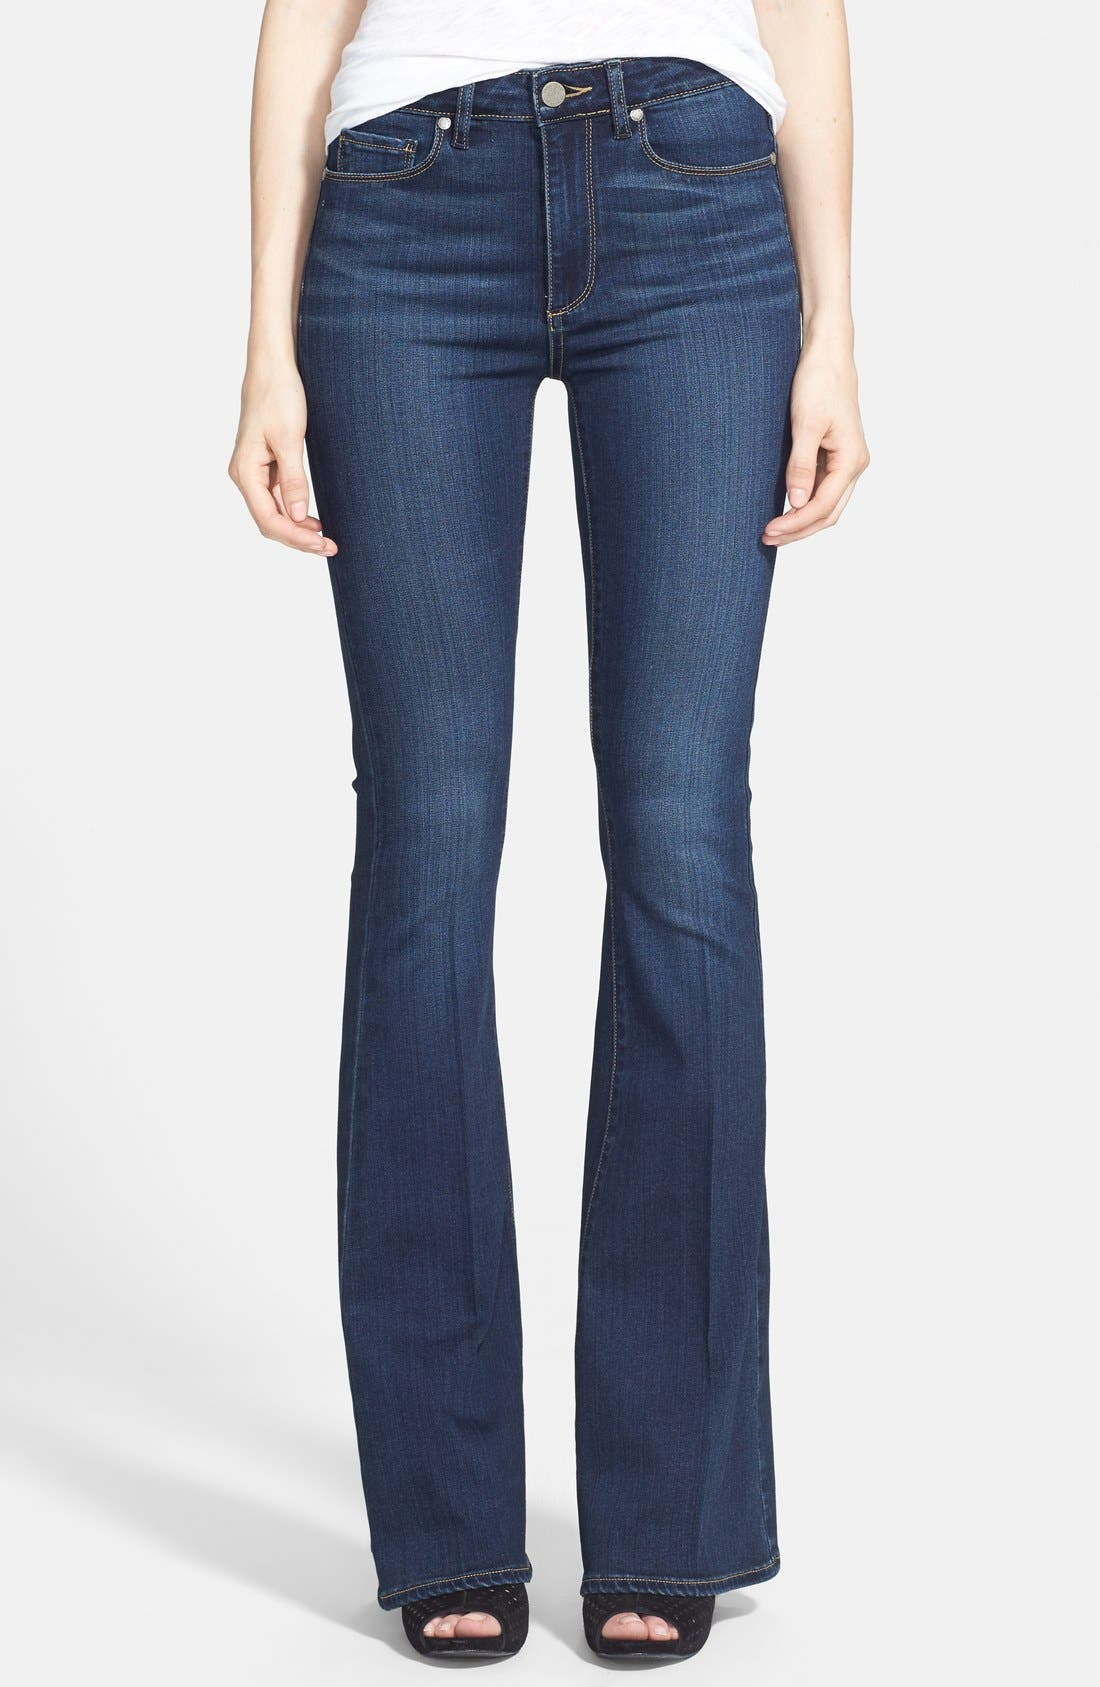 'Transcend - Bell Canyon' High Rise Flare Jeans,                         Main,                         color, Nottingham